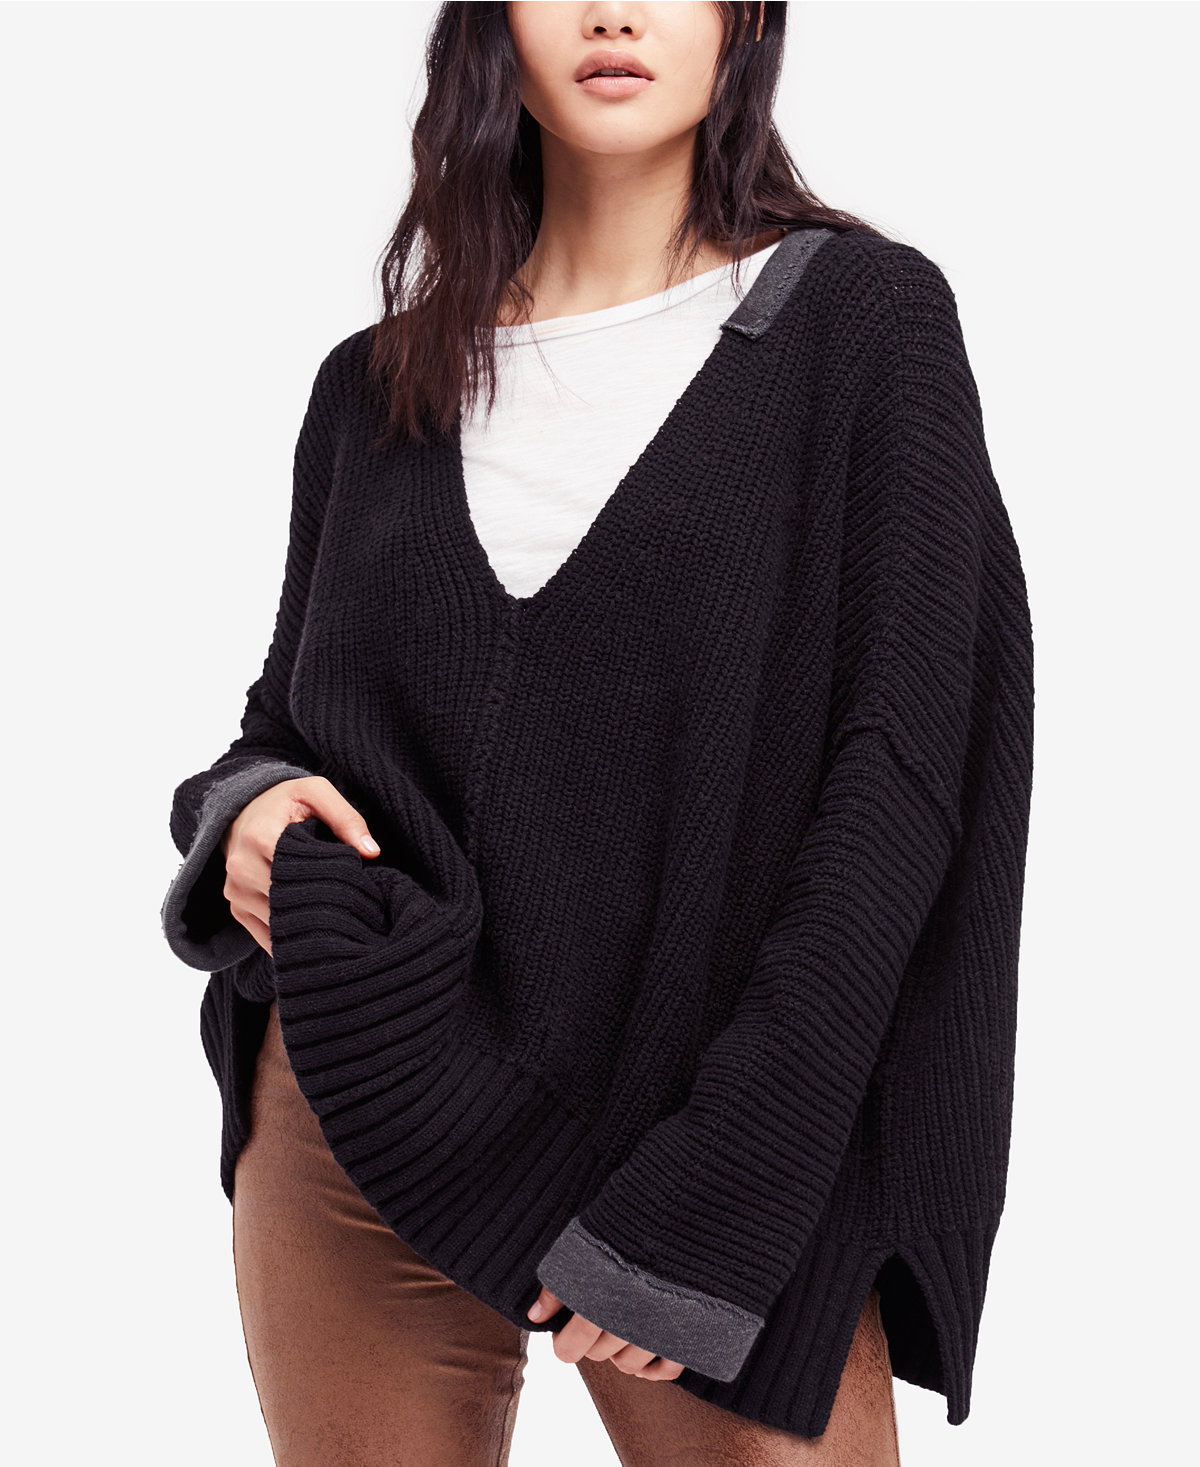 a8458b1692 Free People Take Over Me V-Neck Sweater · September 22